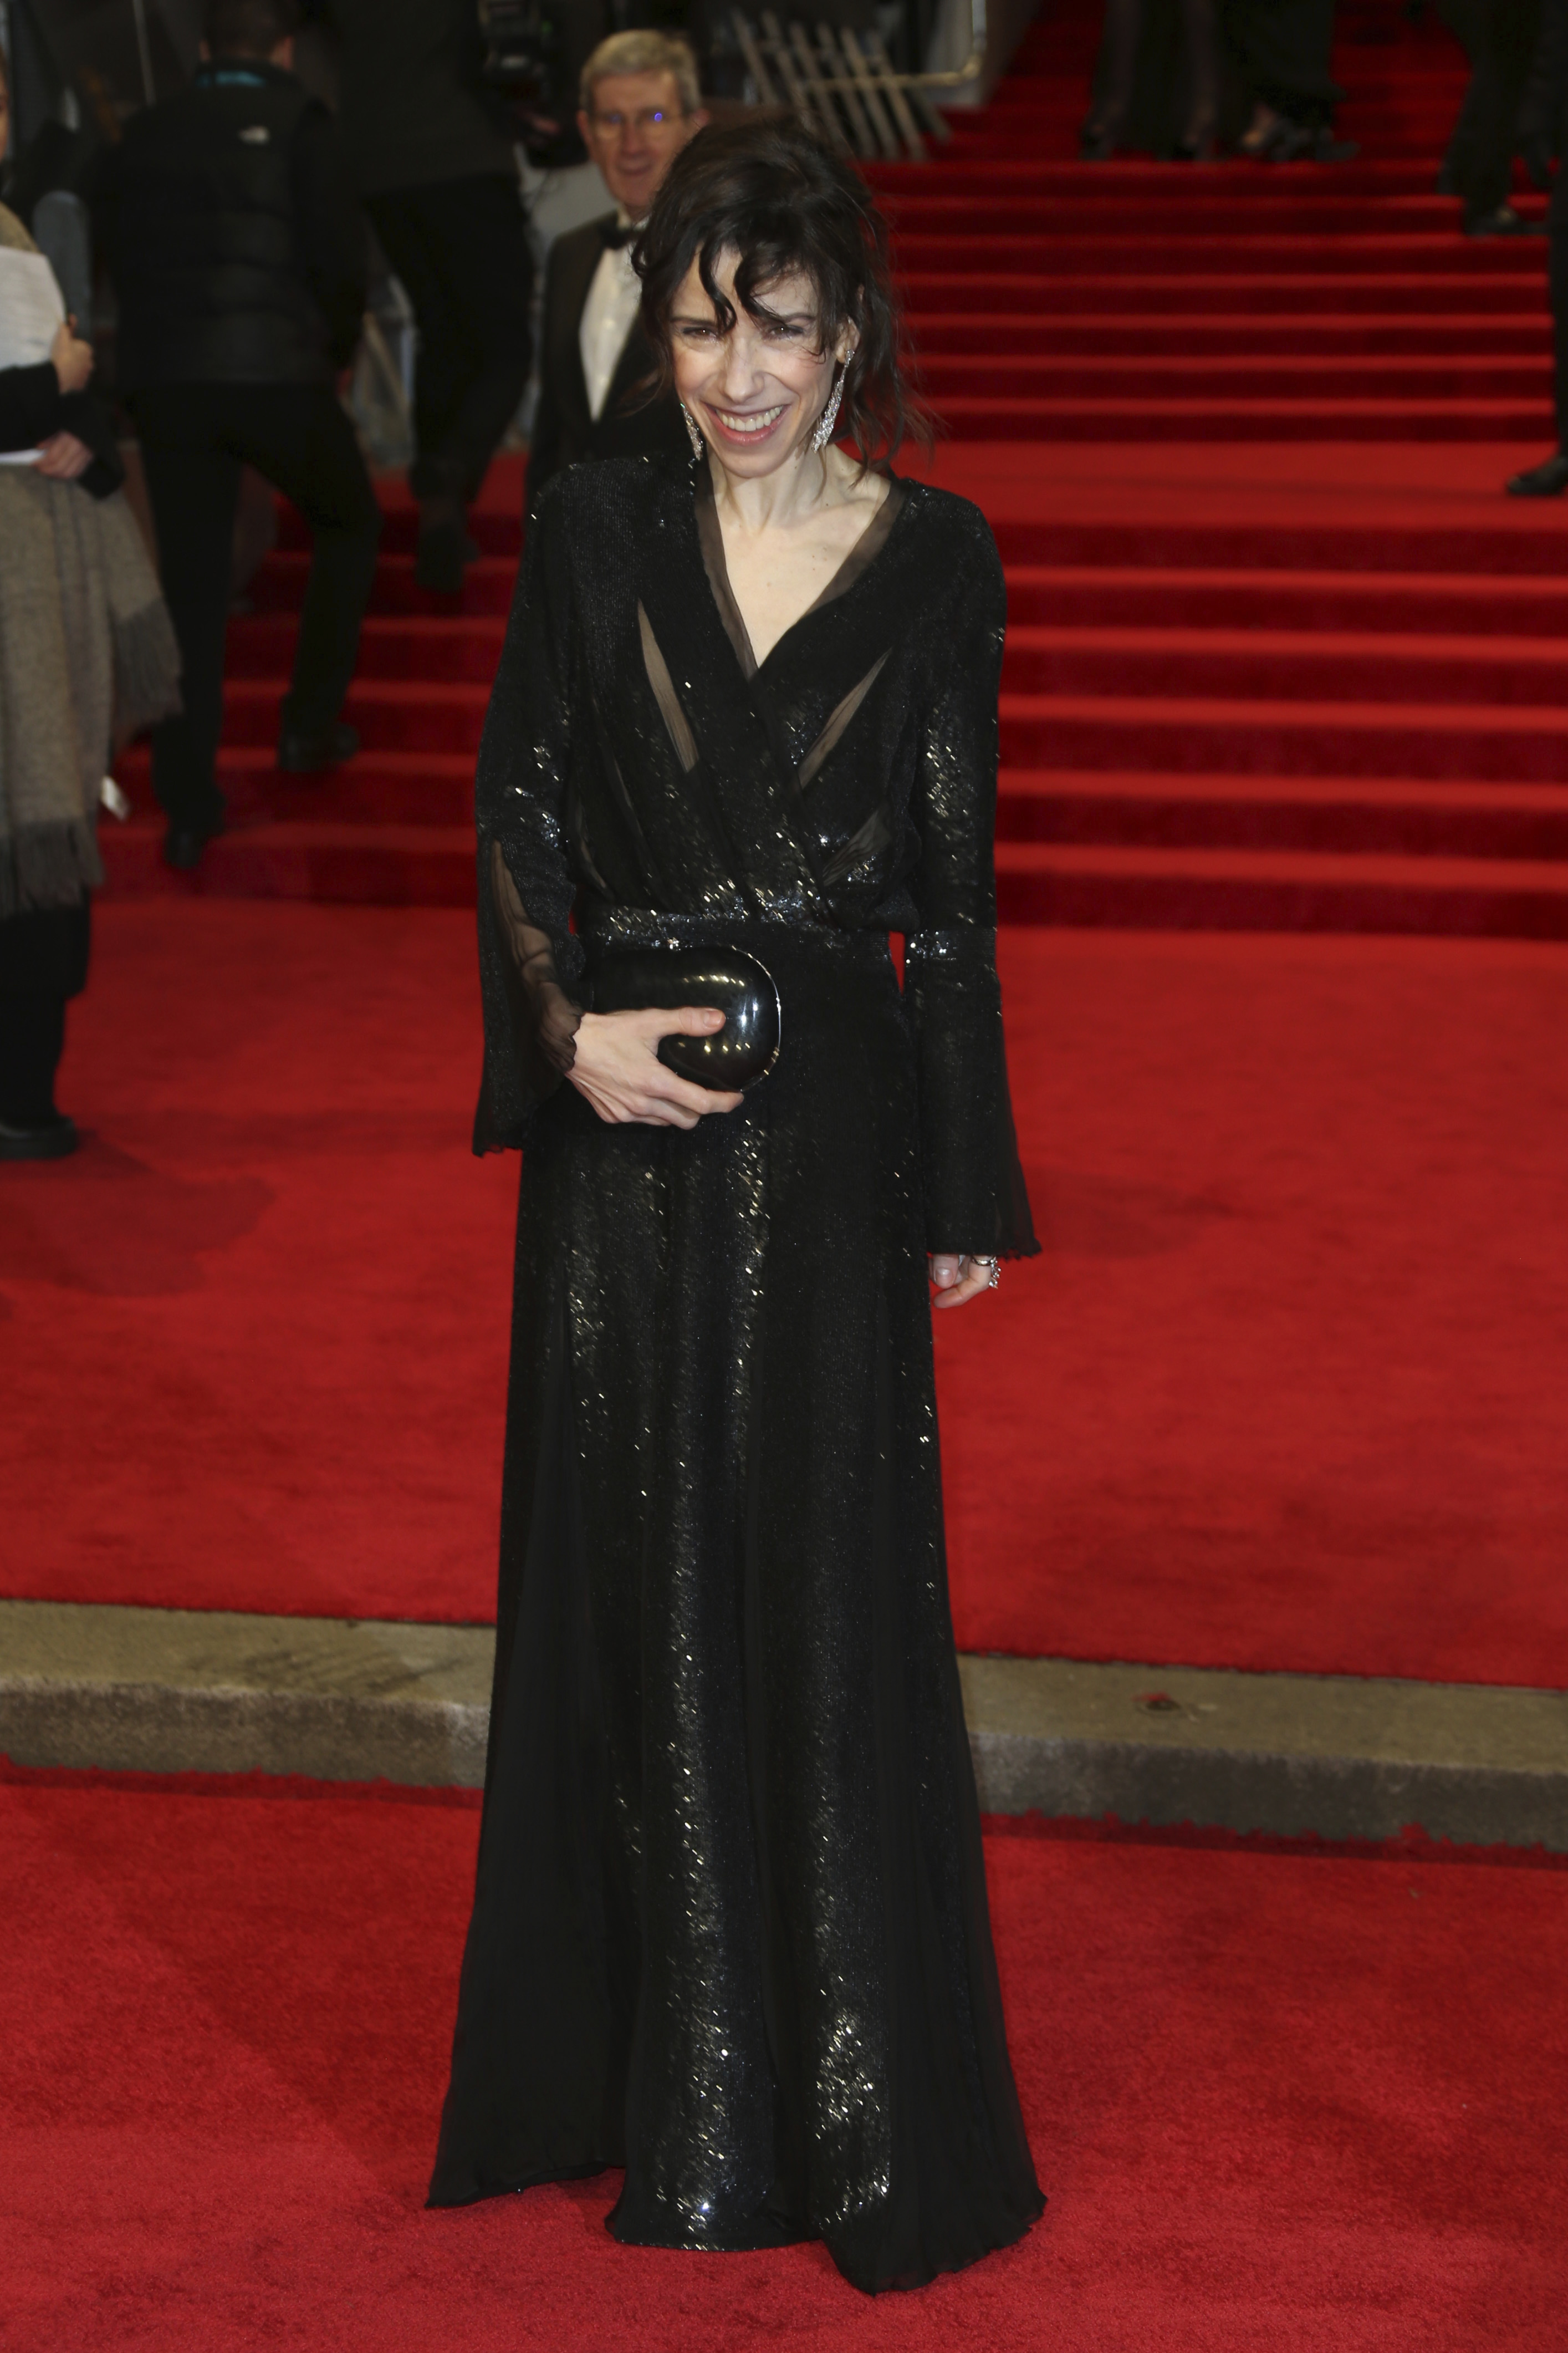 <div class='meta'><div class='origin-logo' data-origin='AP'></div><span class='caption-text' data-credit='Joel C Ryan/Invision/AP'>Actress Sally Hawkins poses for photographers upon arrival at the BAFTA 2018 Awards in London, Sunday, Feb. 18, 2018.</span></div>